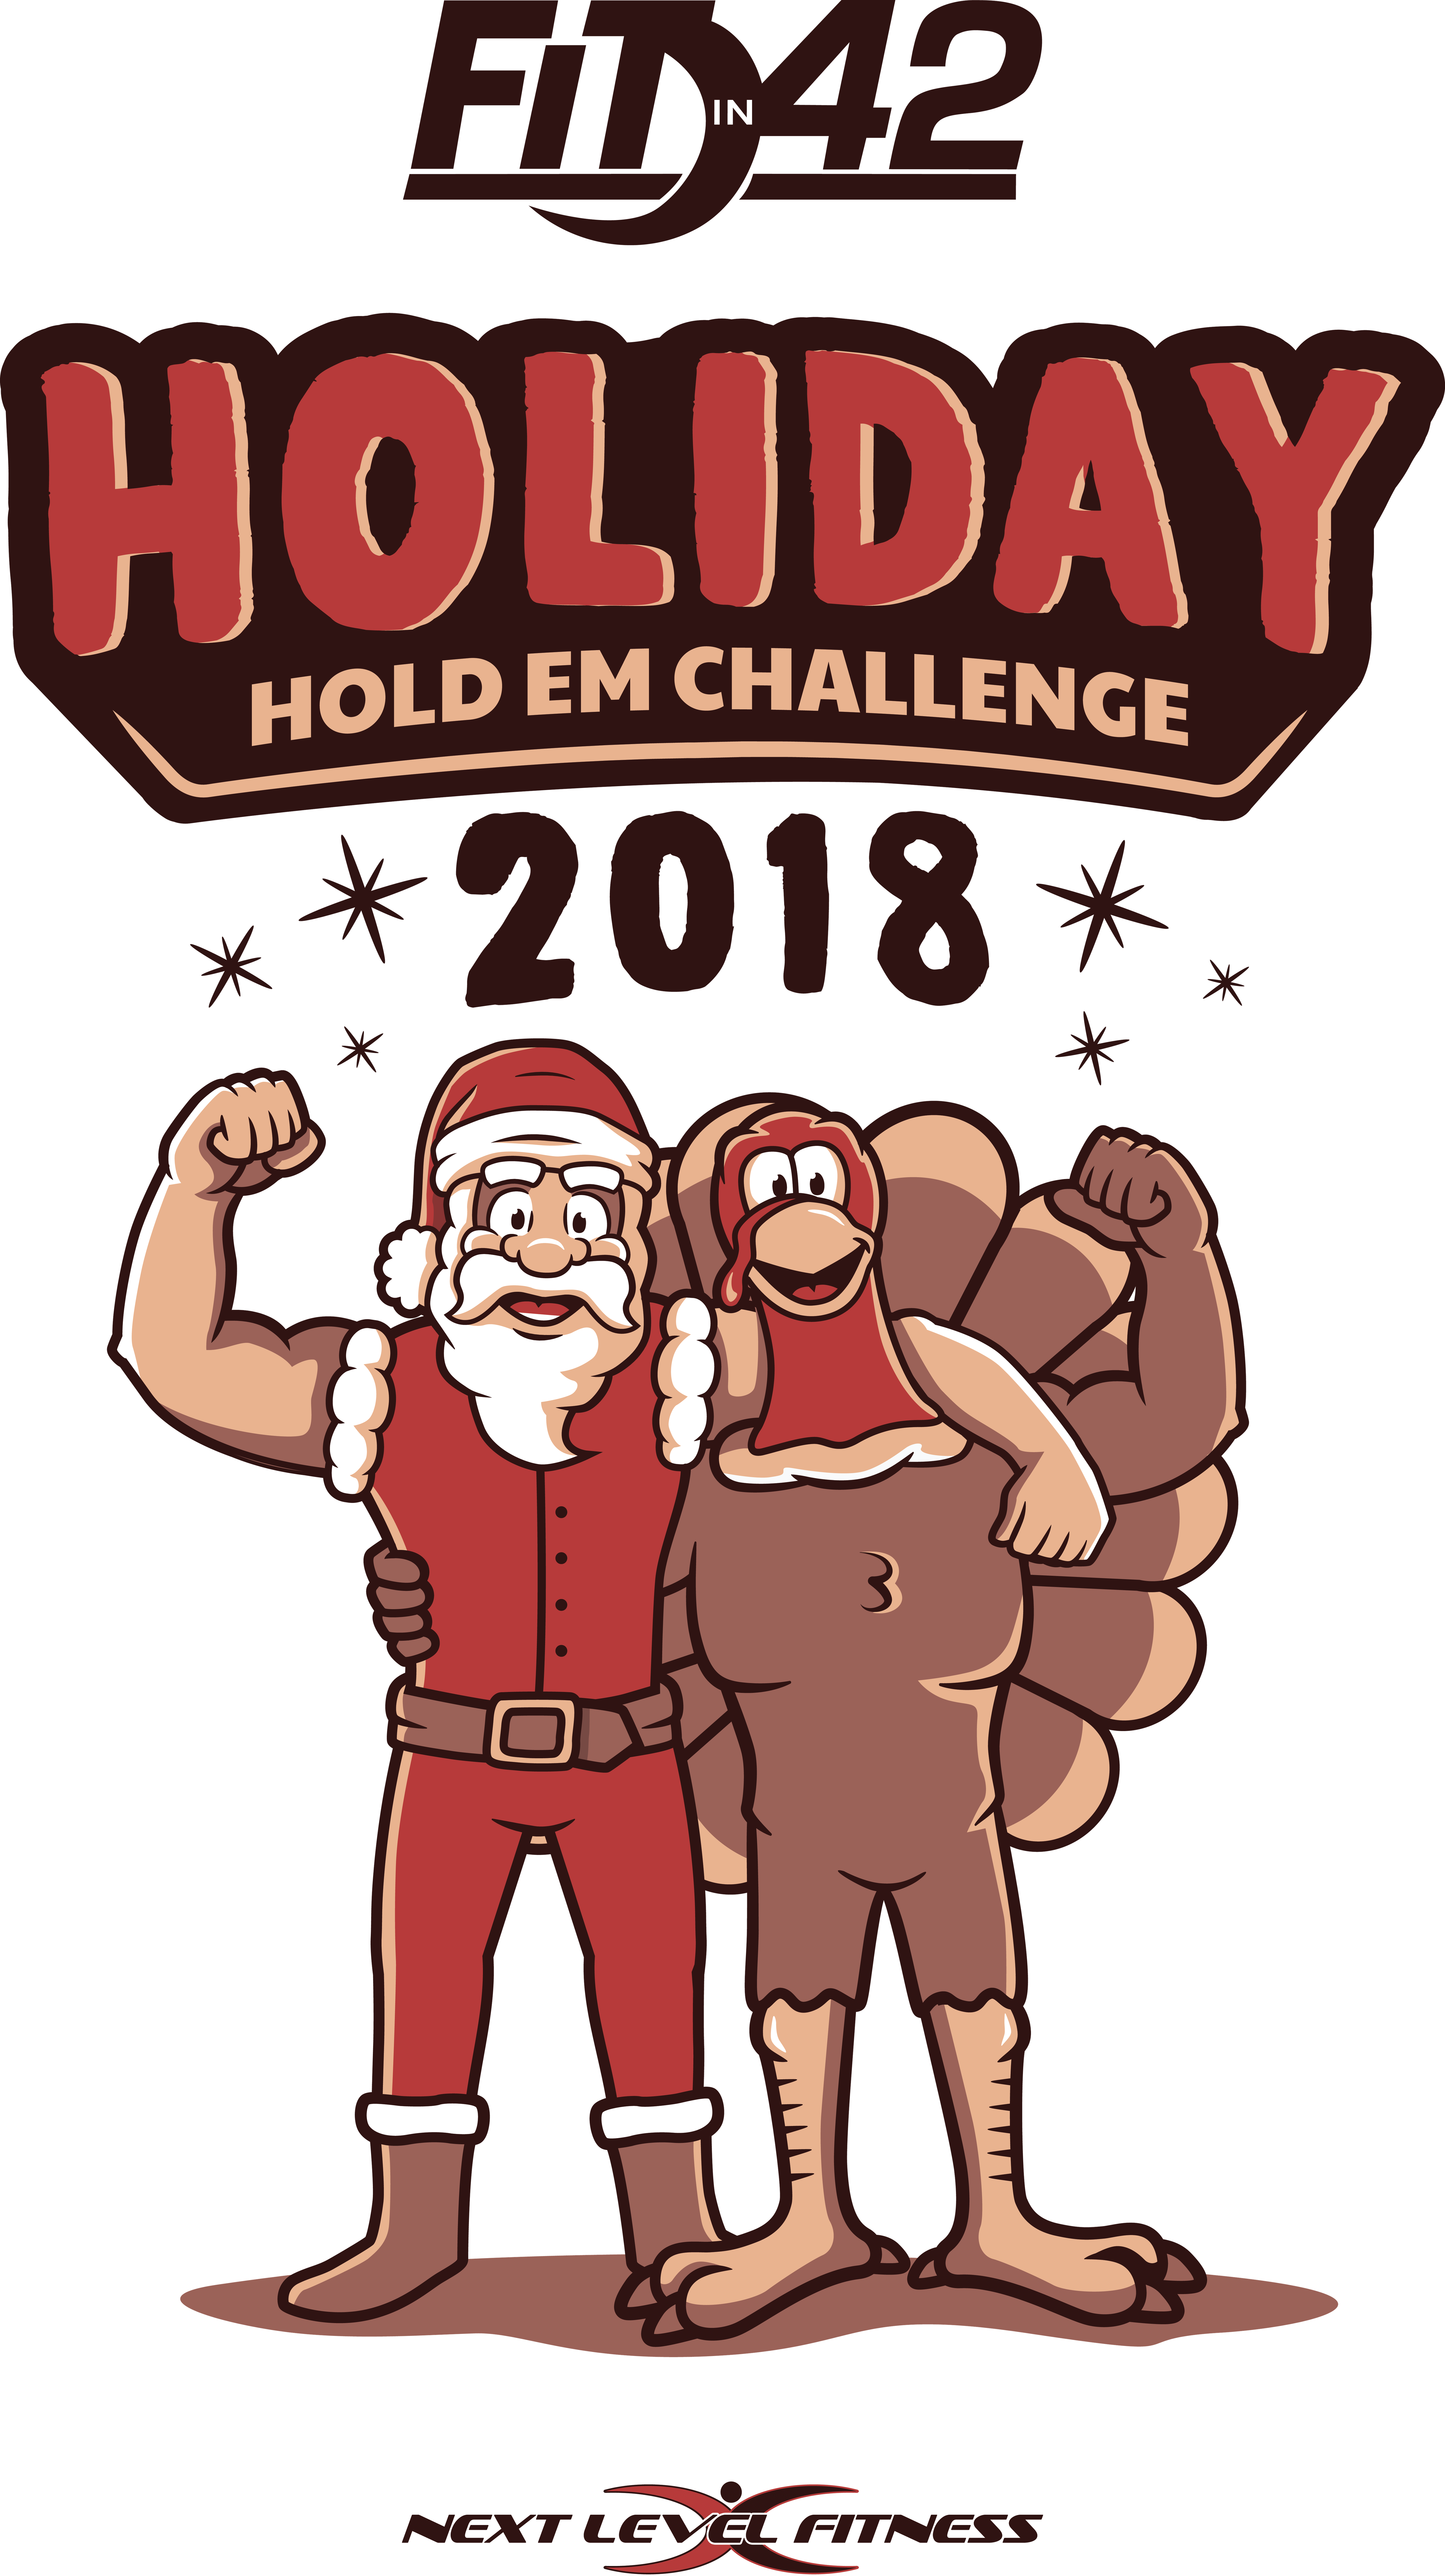 Turkey vs Santa Boxing Match T-shirt